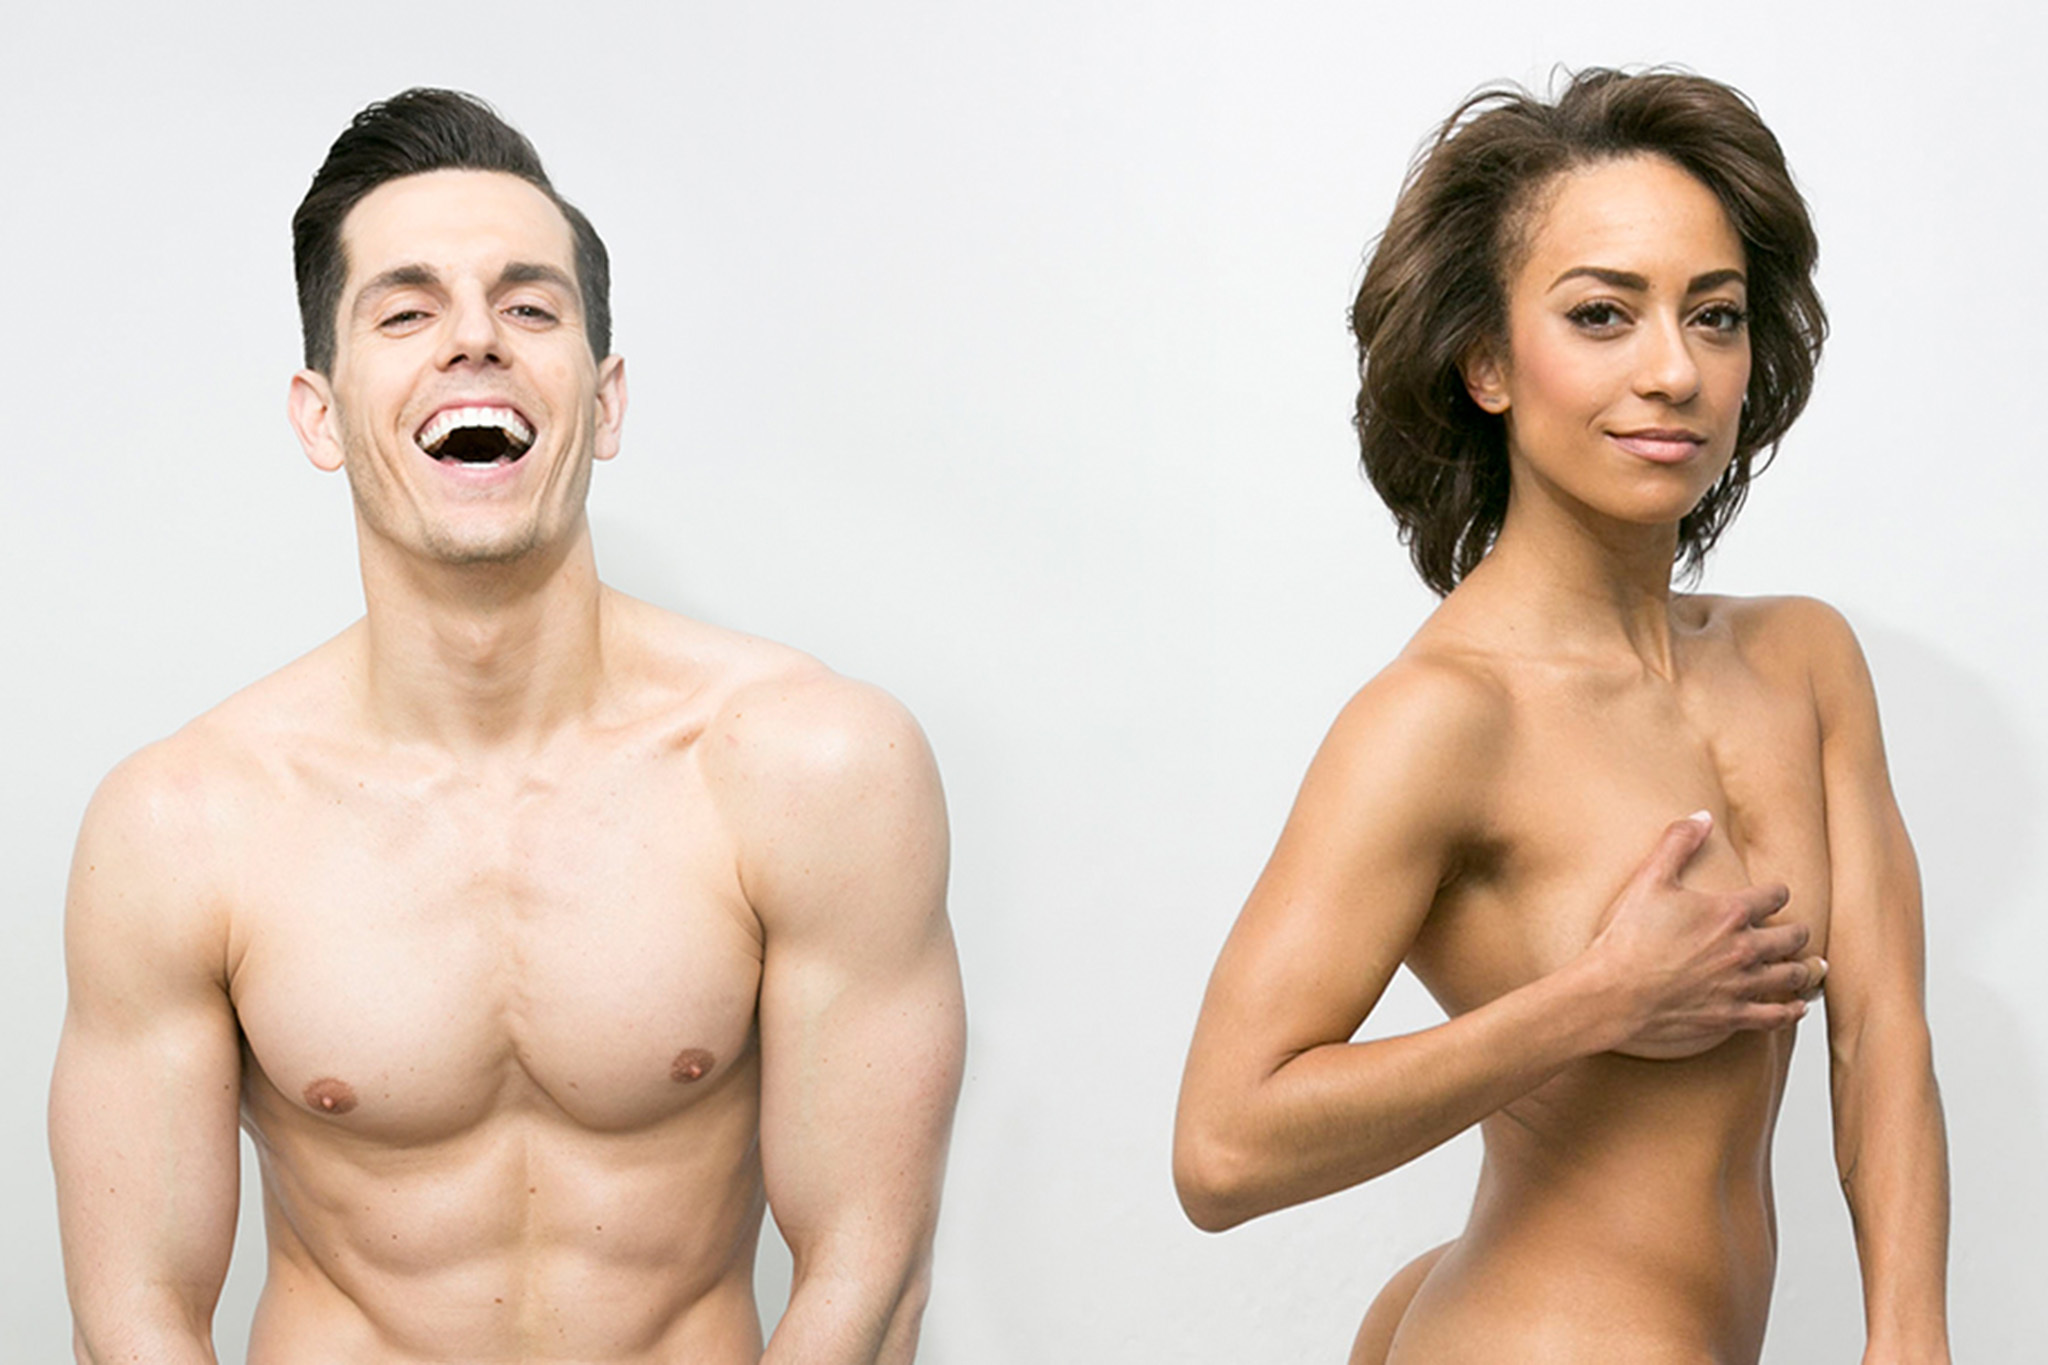 Hottest chorus boys and girls on Broadway